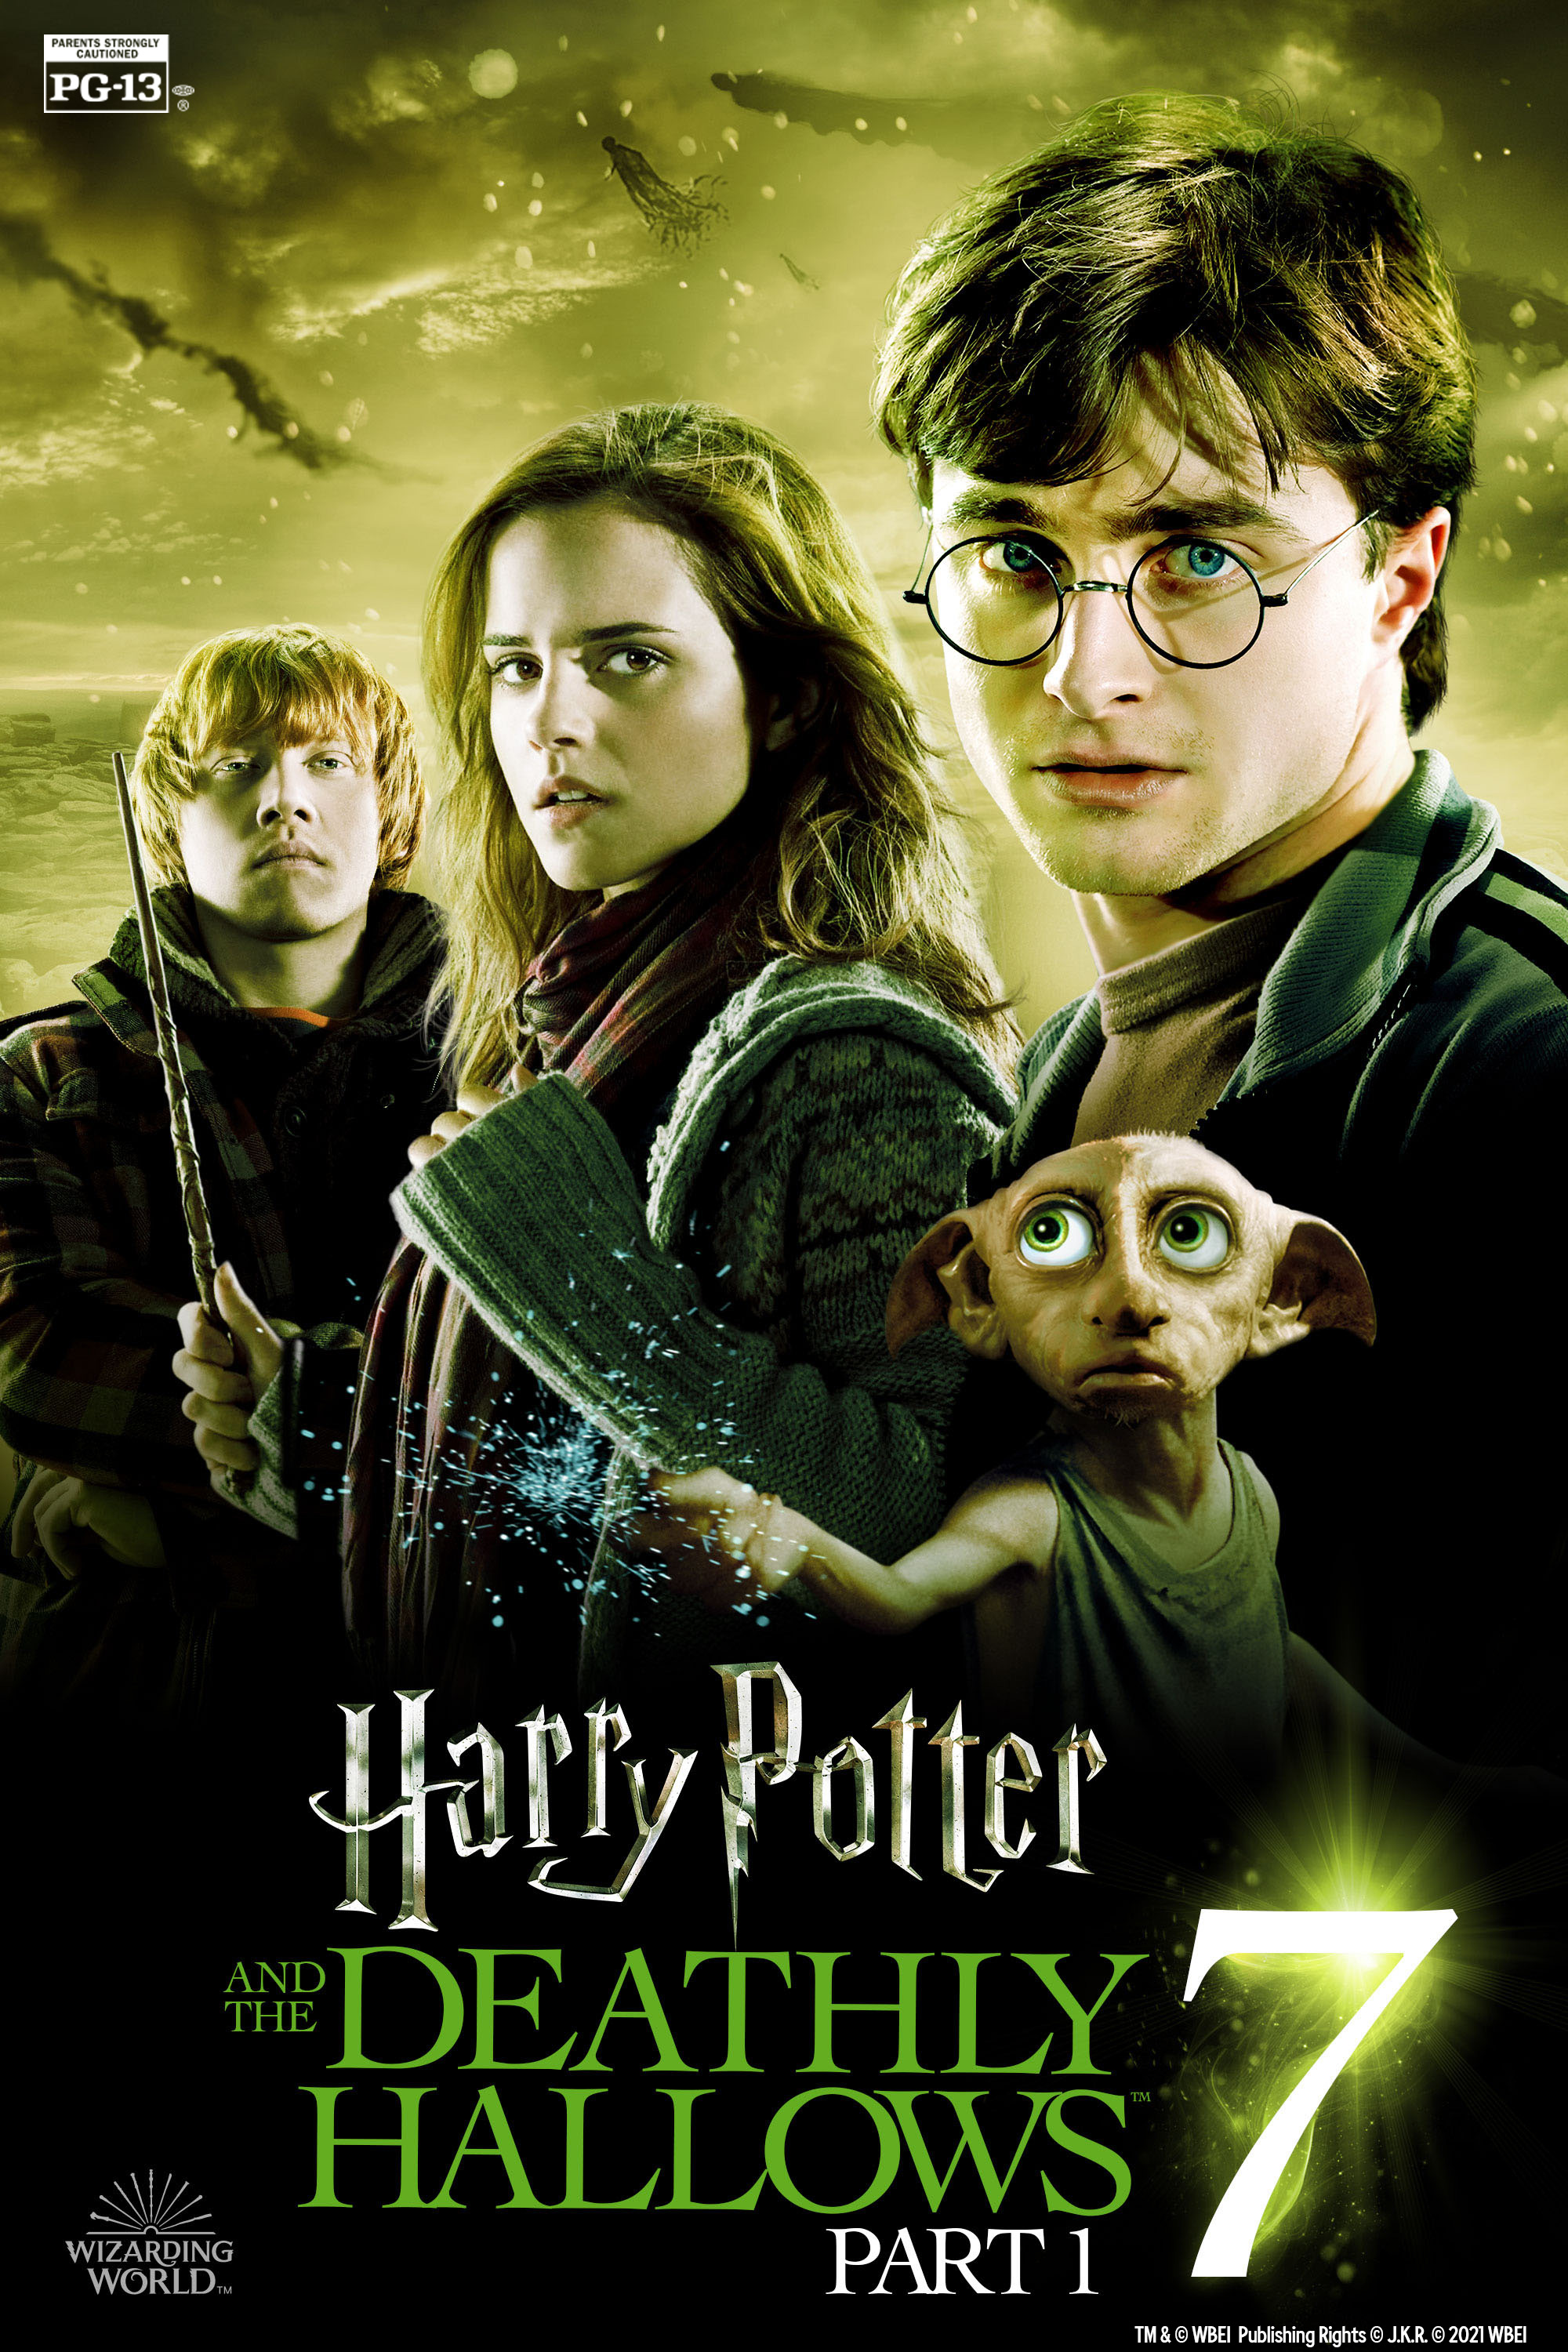 Movie poster image for HARRY POTTER AND THE DEATHLY HALLOWS: PART 1